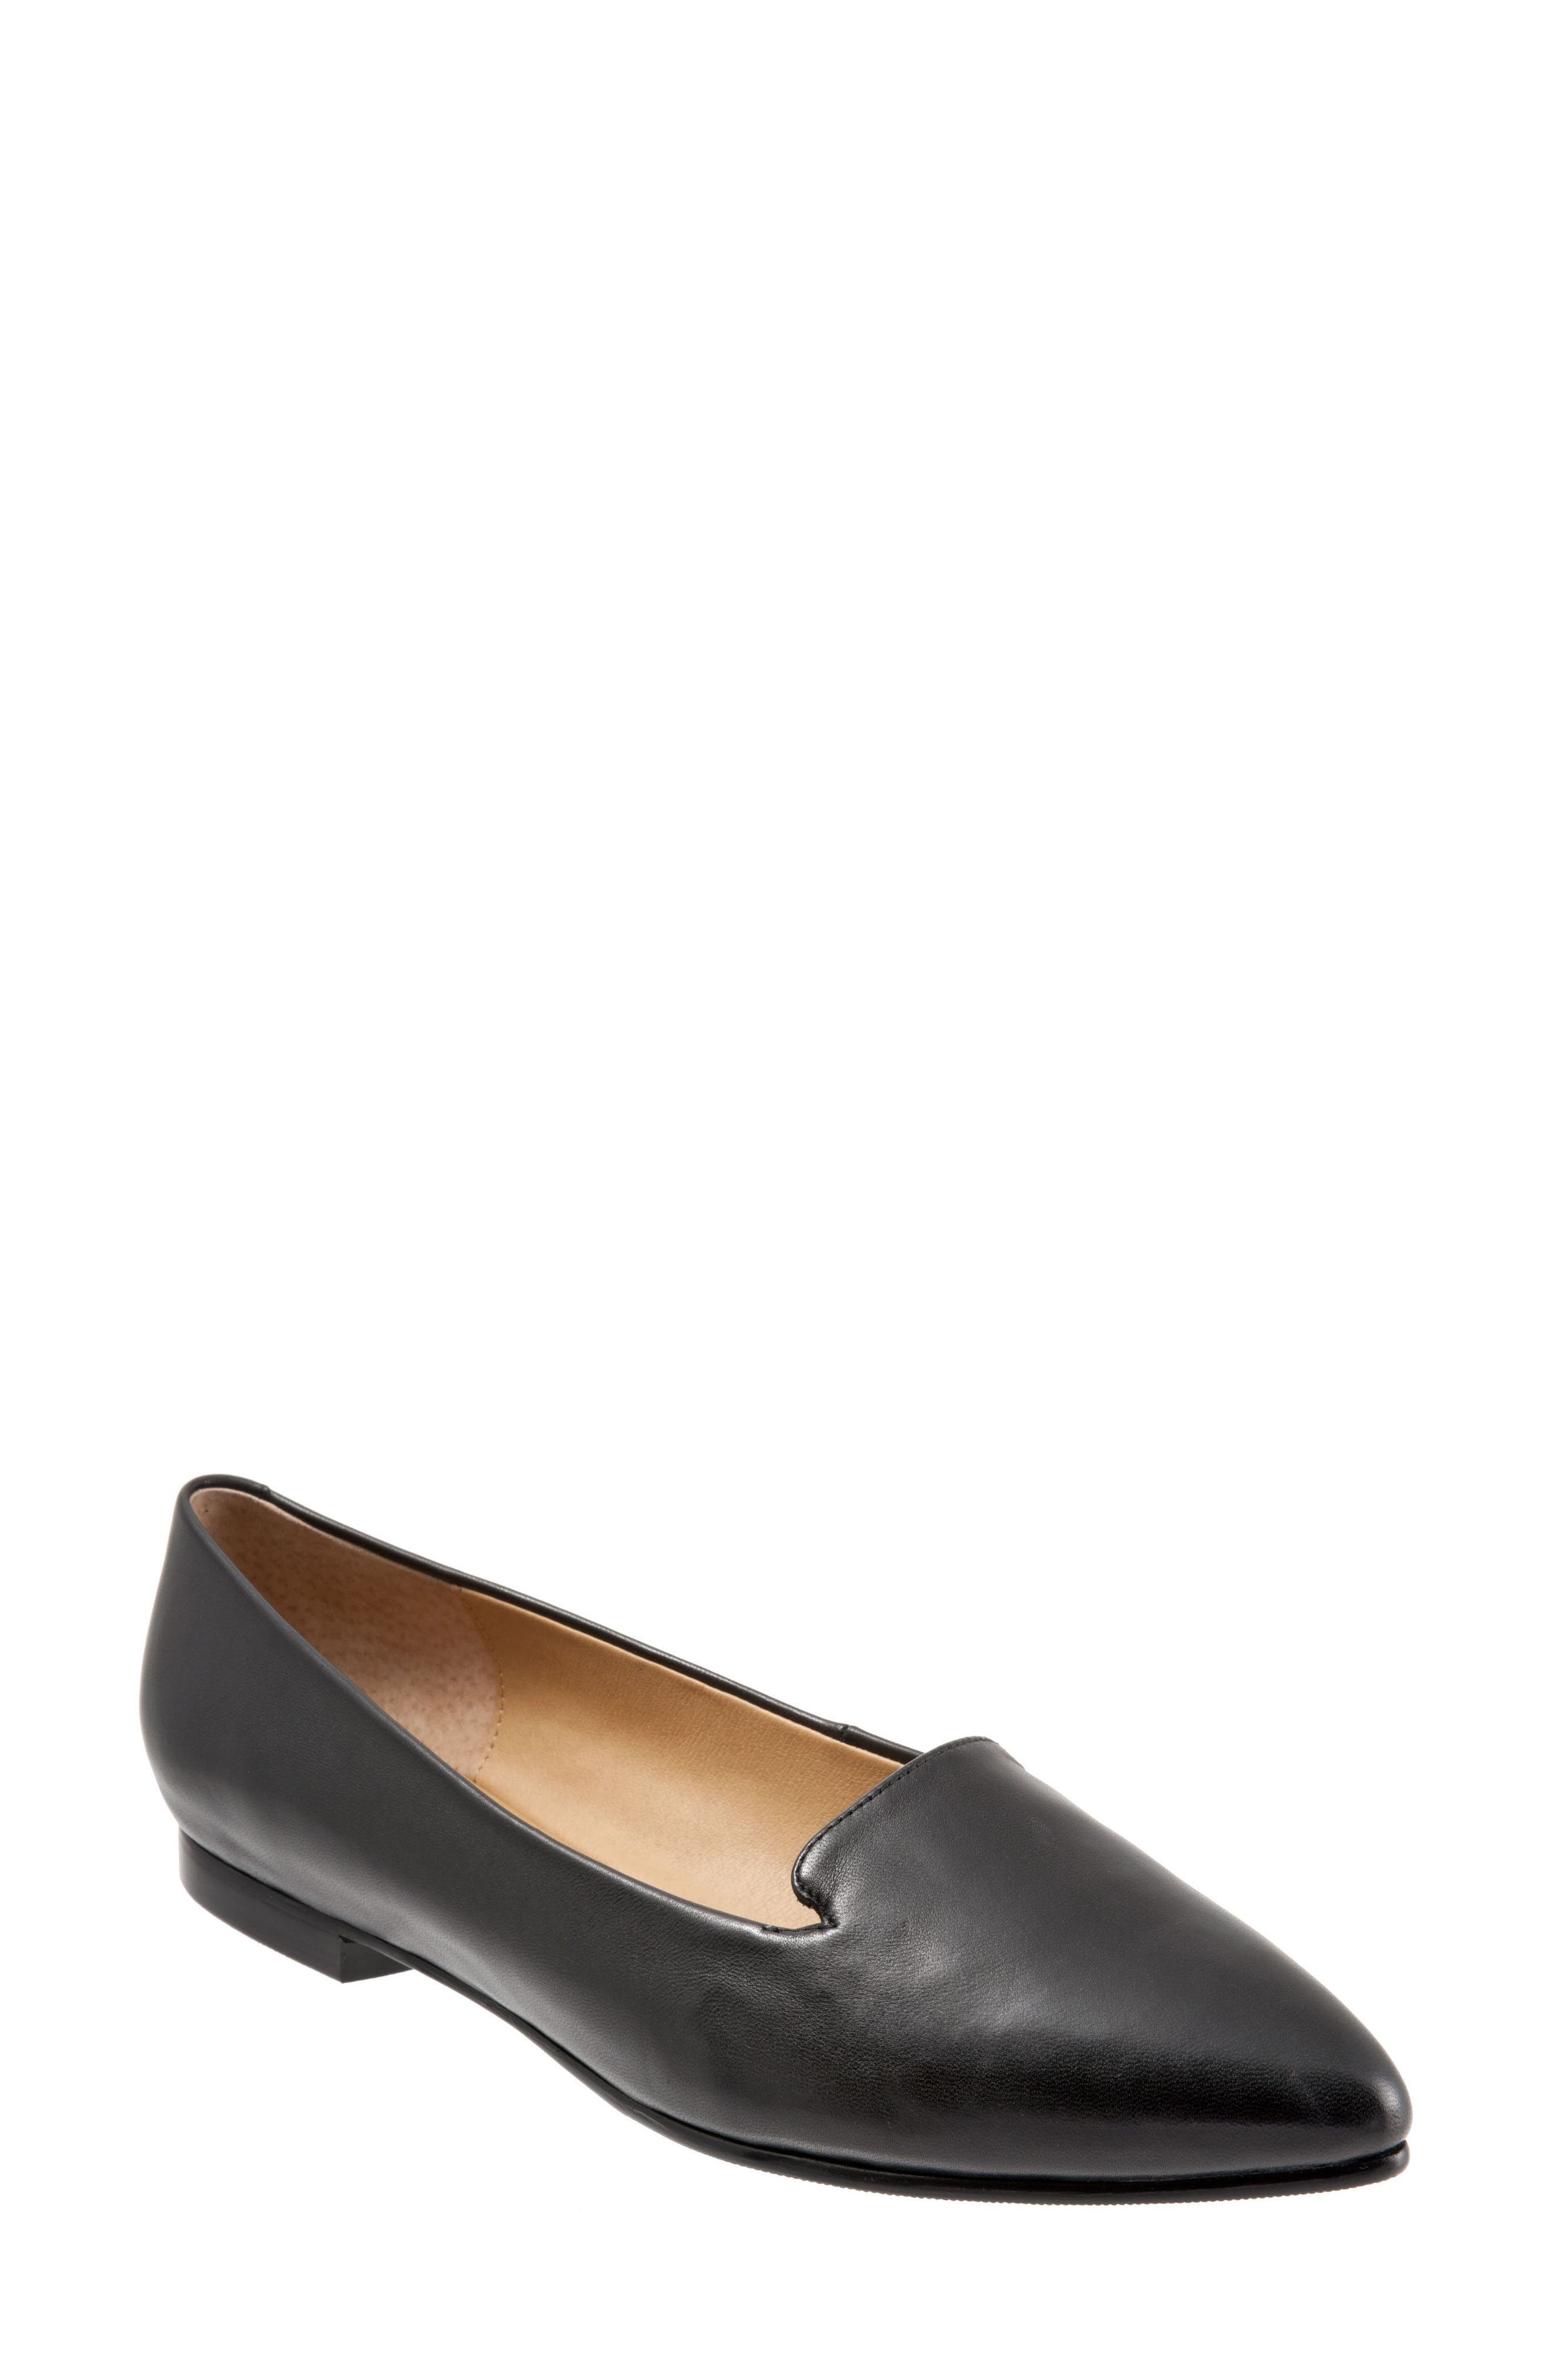 TROTTERS, Harlowe Pointy Toe Loafer, Main thumbnail 1, color, BLACK LEATHER